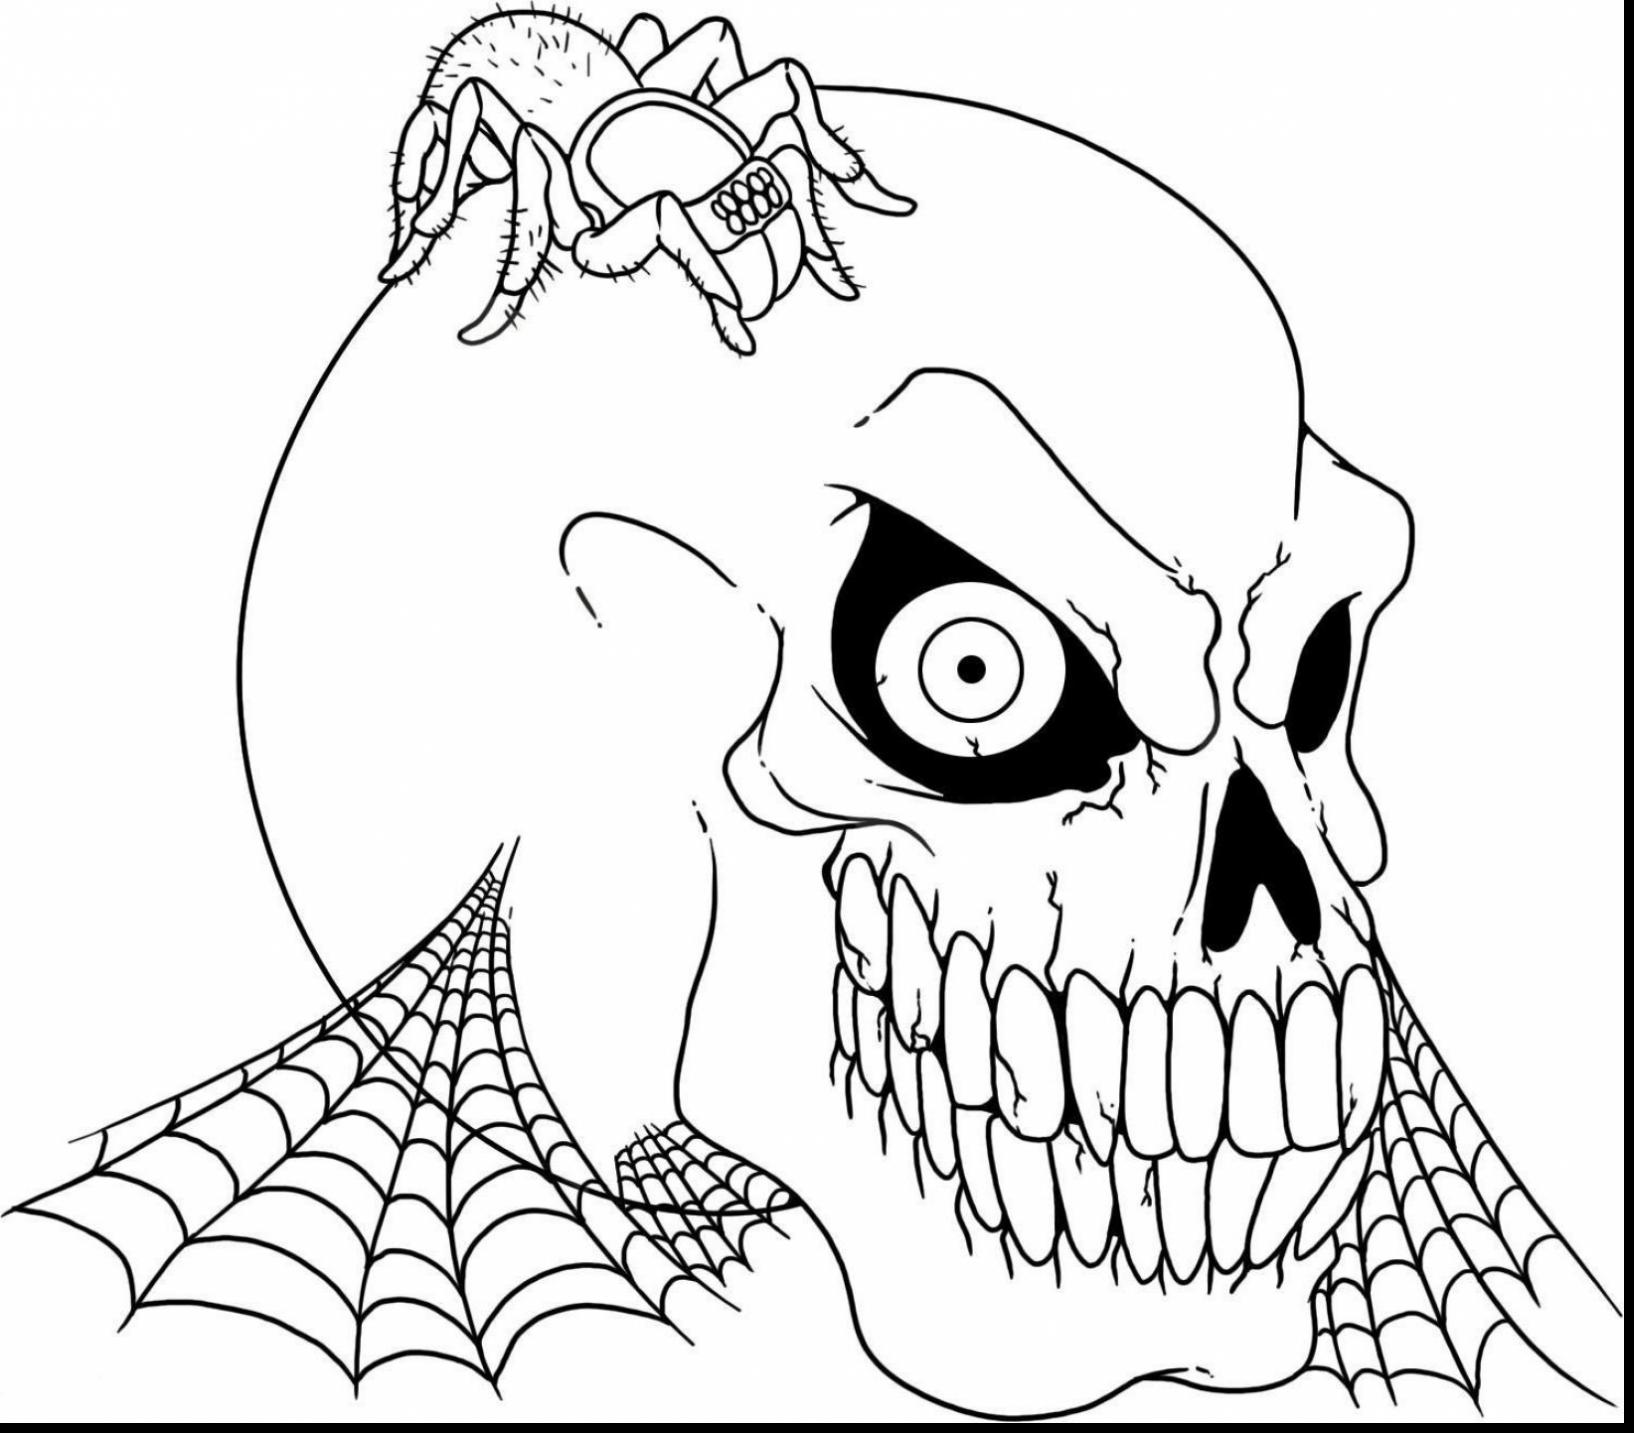 ghost for coloring ghost kids coloring pages coloring home for ghost coloring